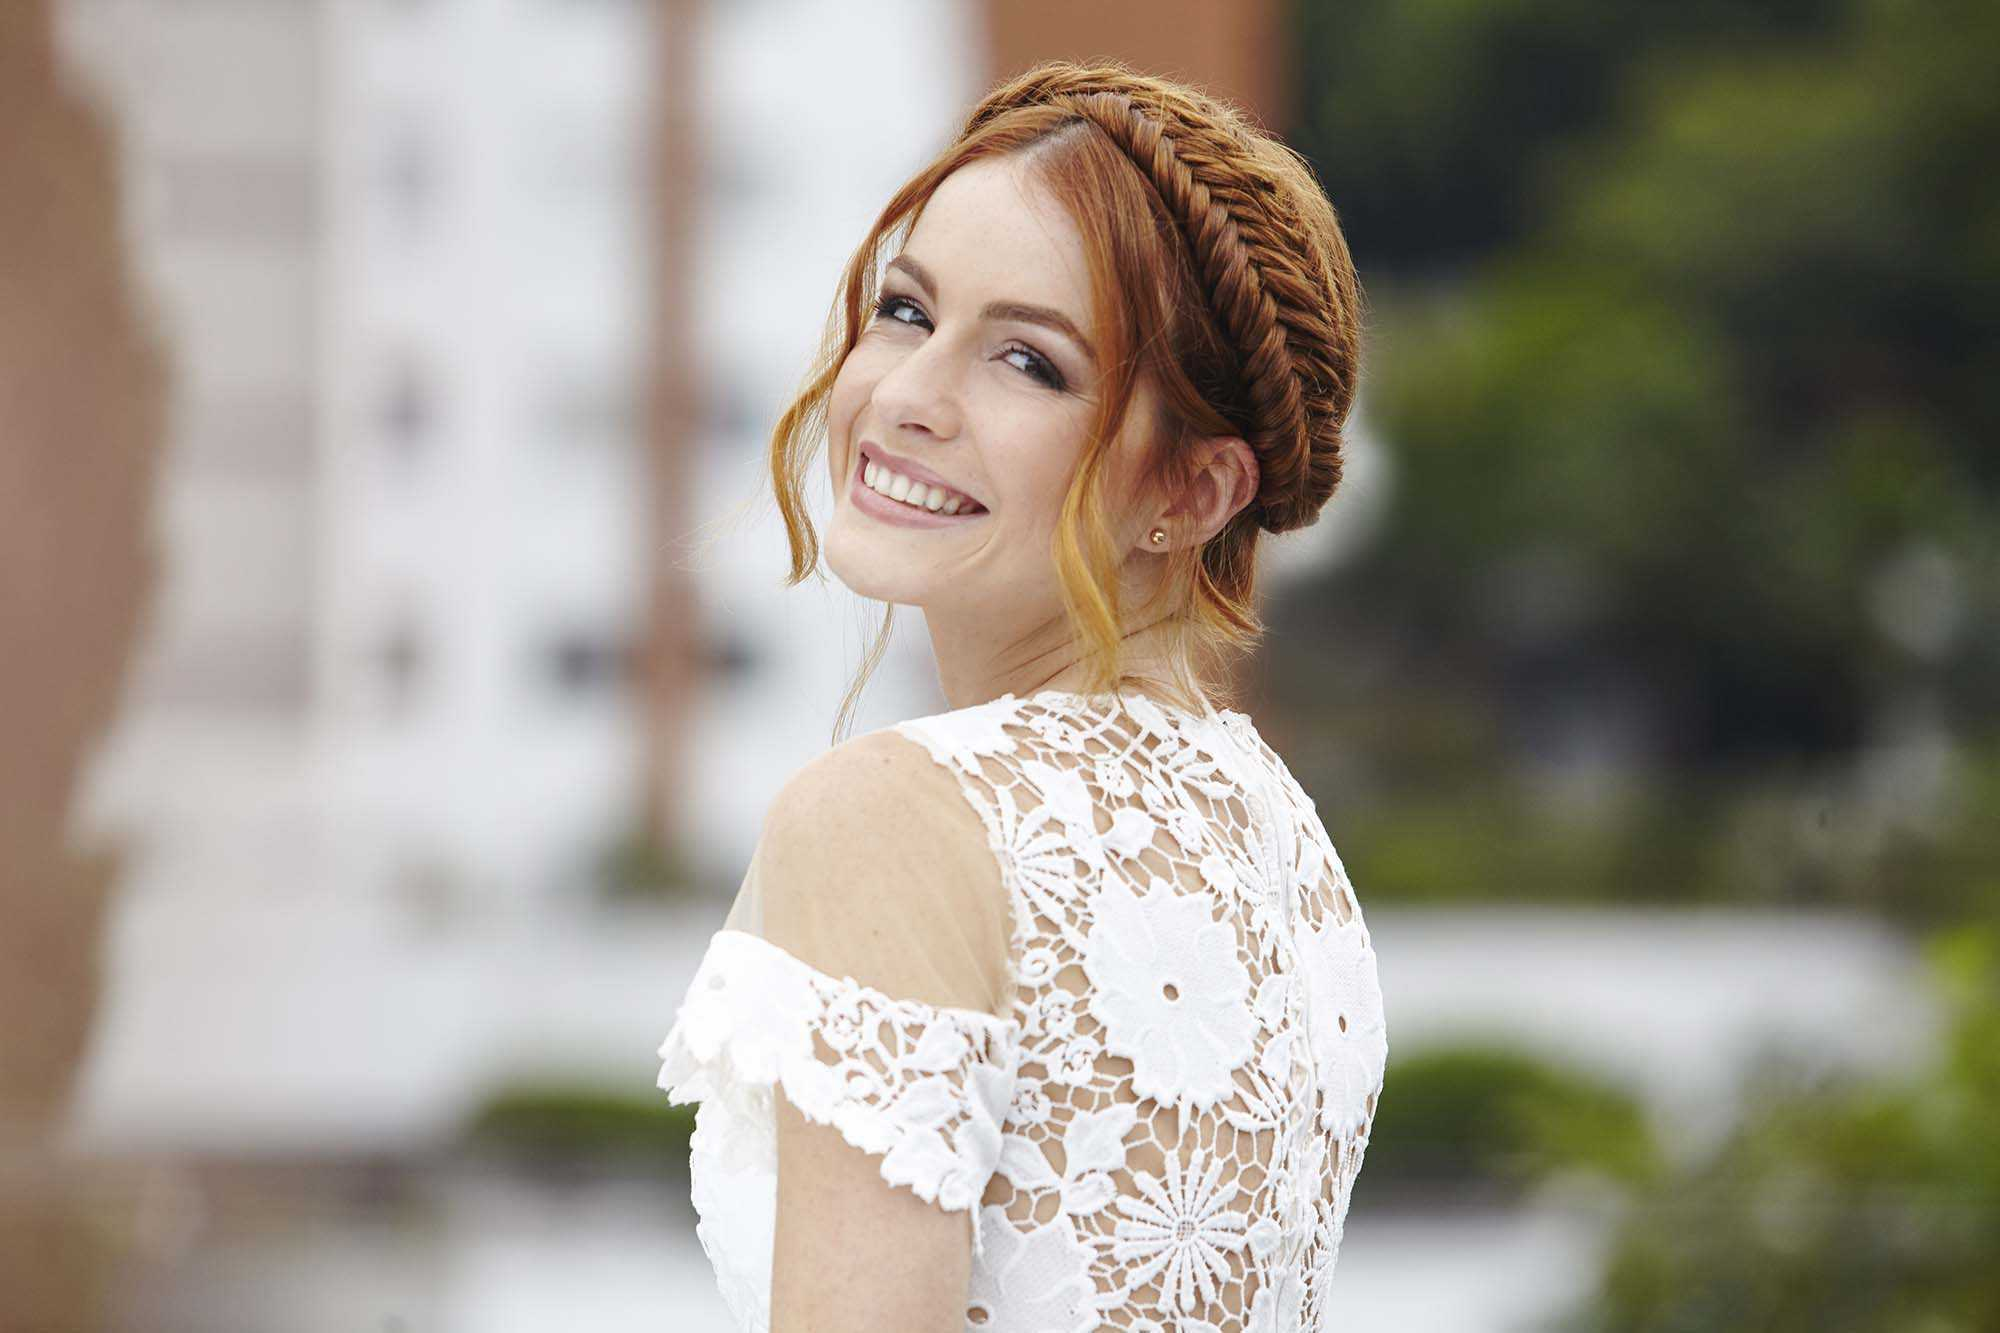 wedding hair updo: close up shot of woman with messy fishtail braid, wearing floral wedding dress